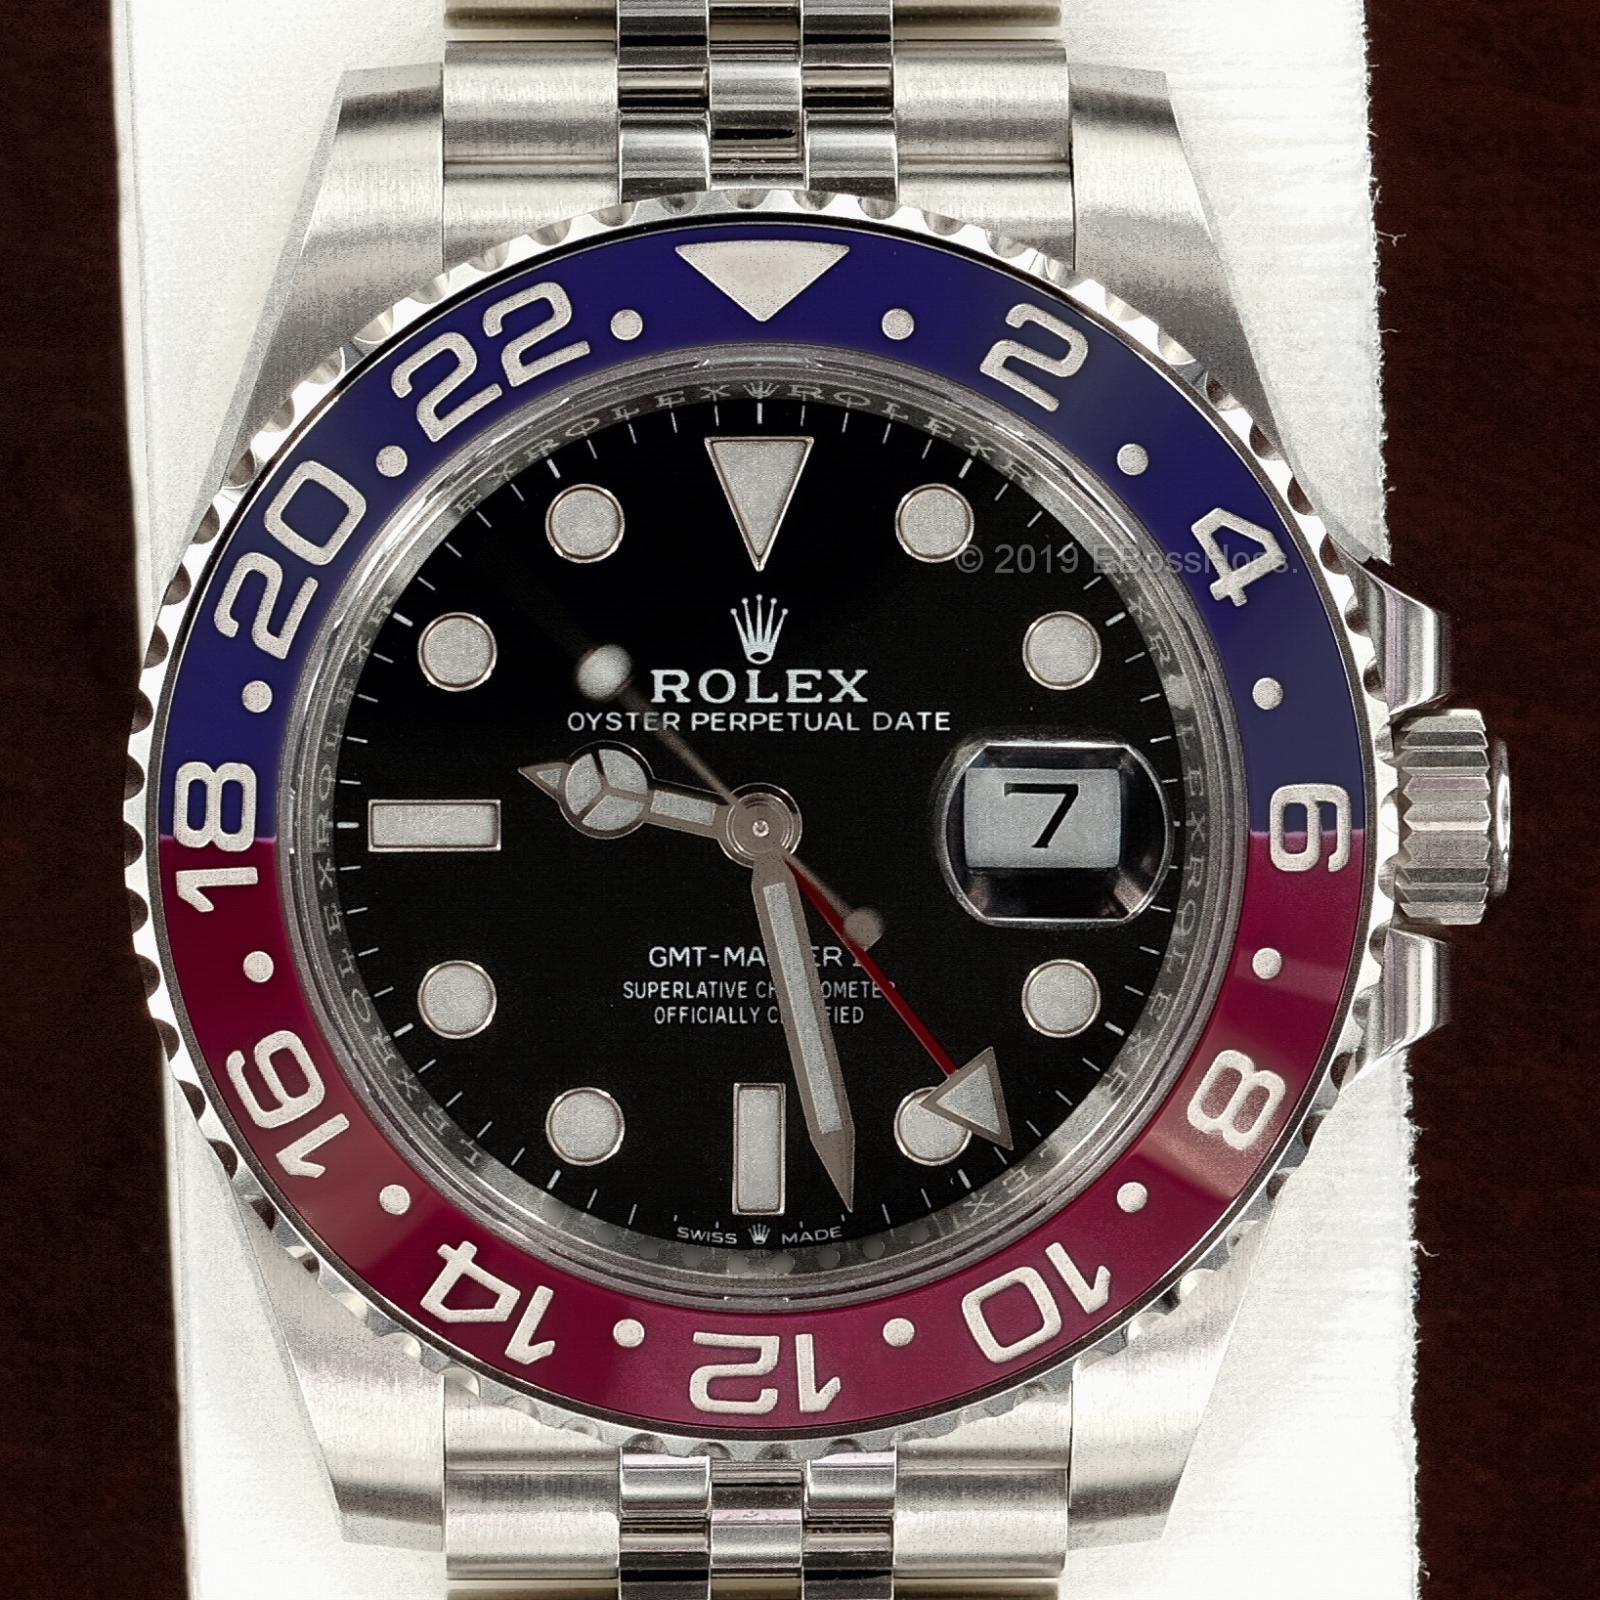 JUST IN ROLEX ... Several models available